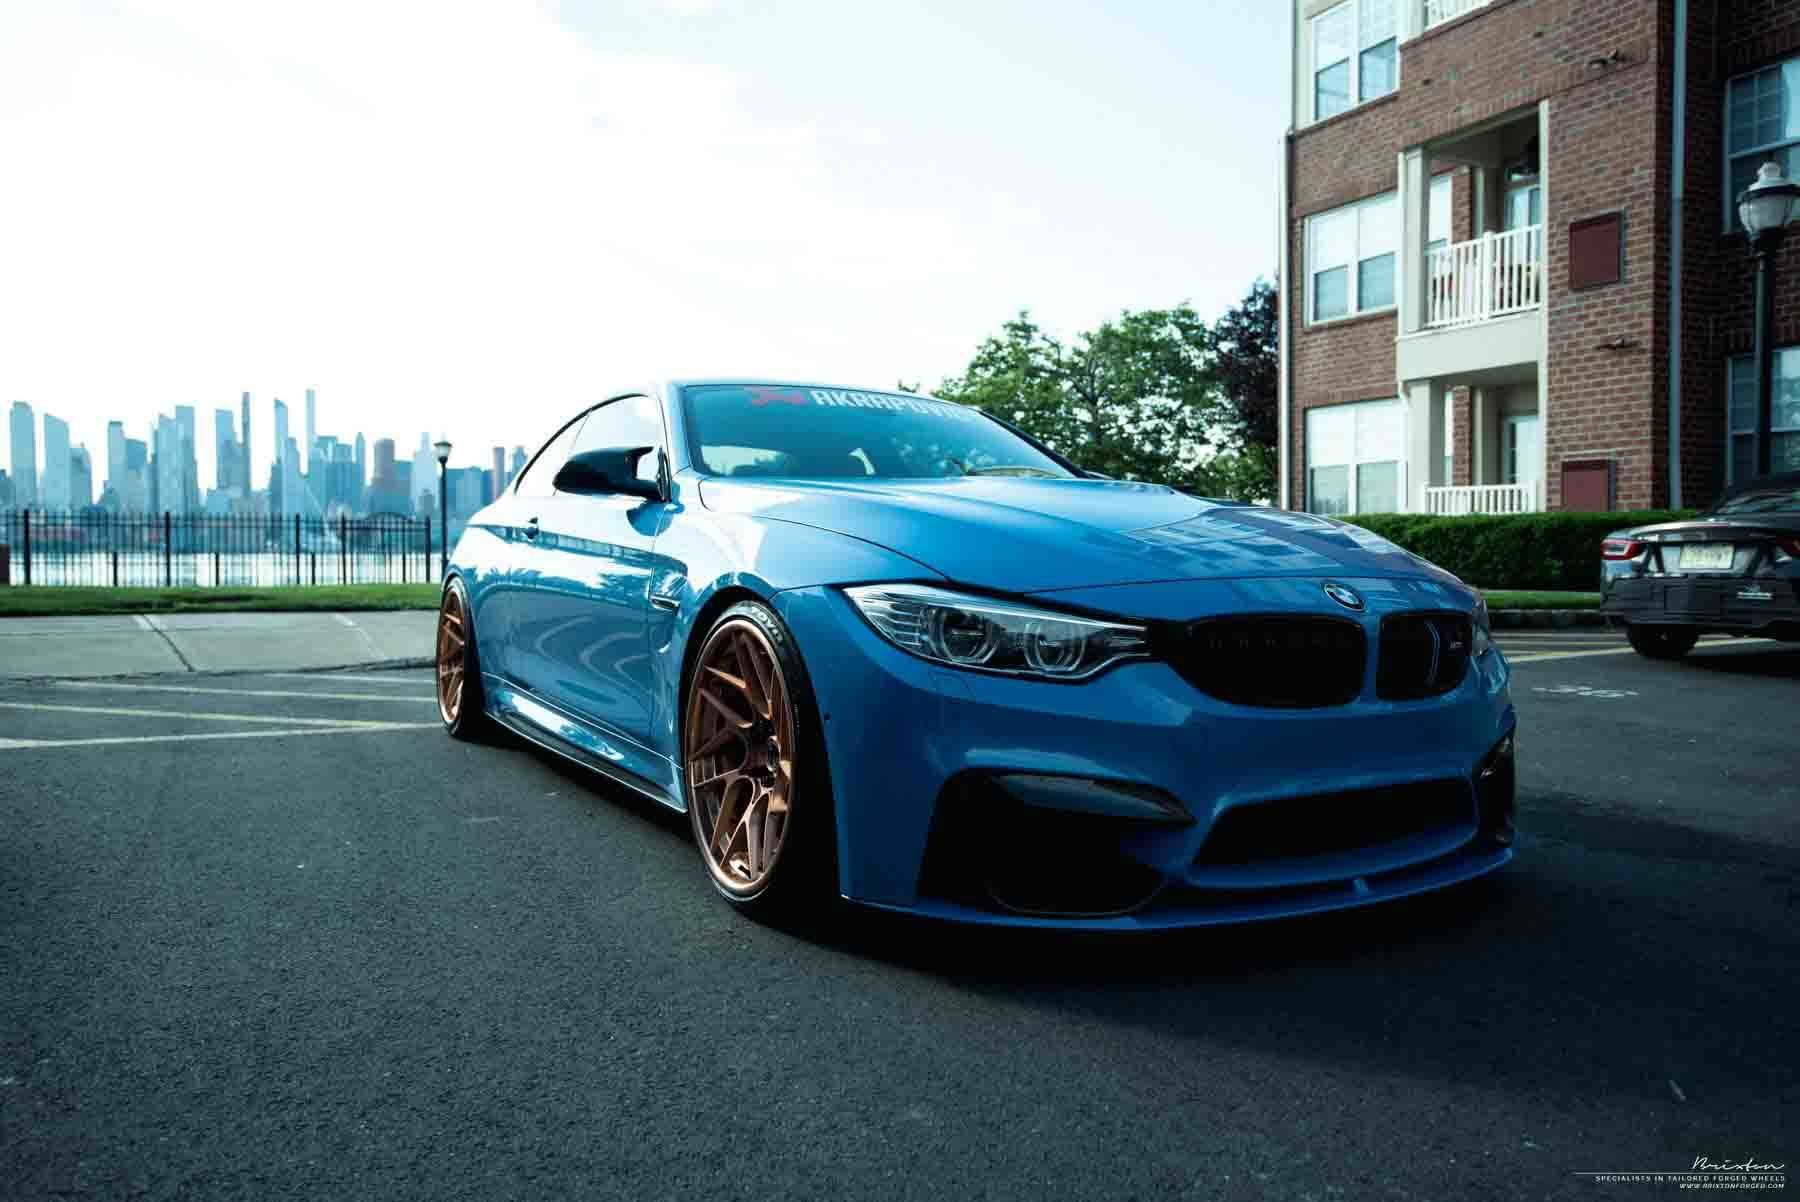 images-products-1-2571-232974859-yas-marina-blue-bmw-m4-f82-brixton-forged-cm7-targa-series-forged-concave-wheels-rose-gold-4-180.jpg